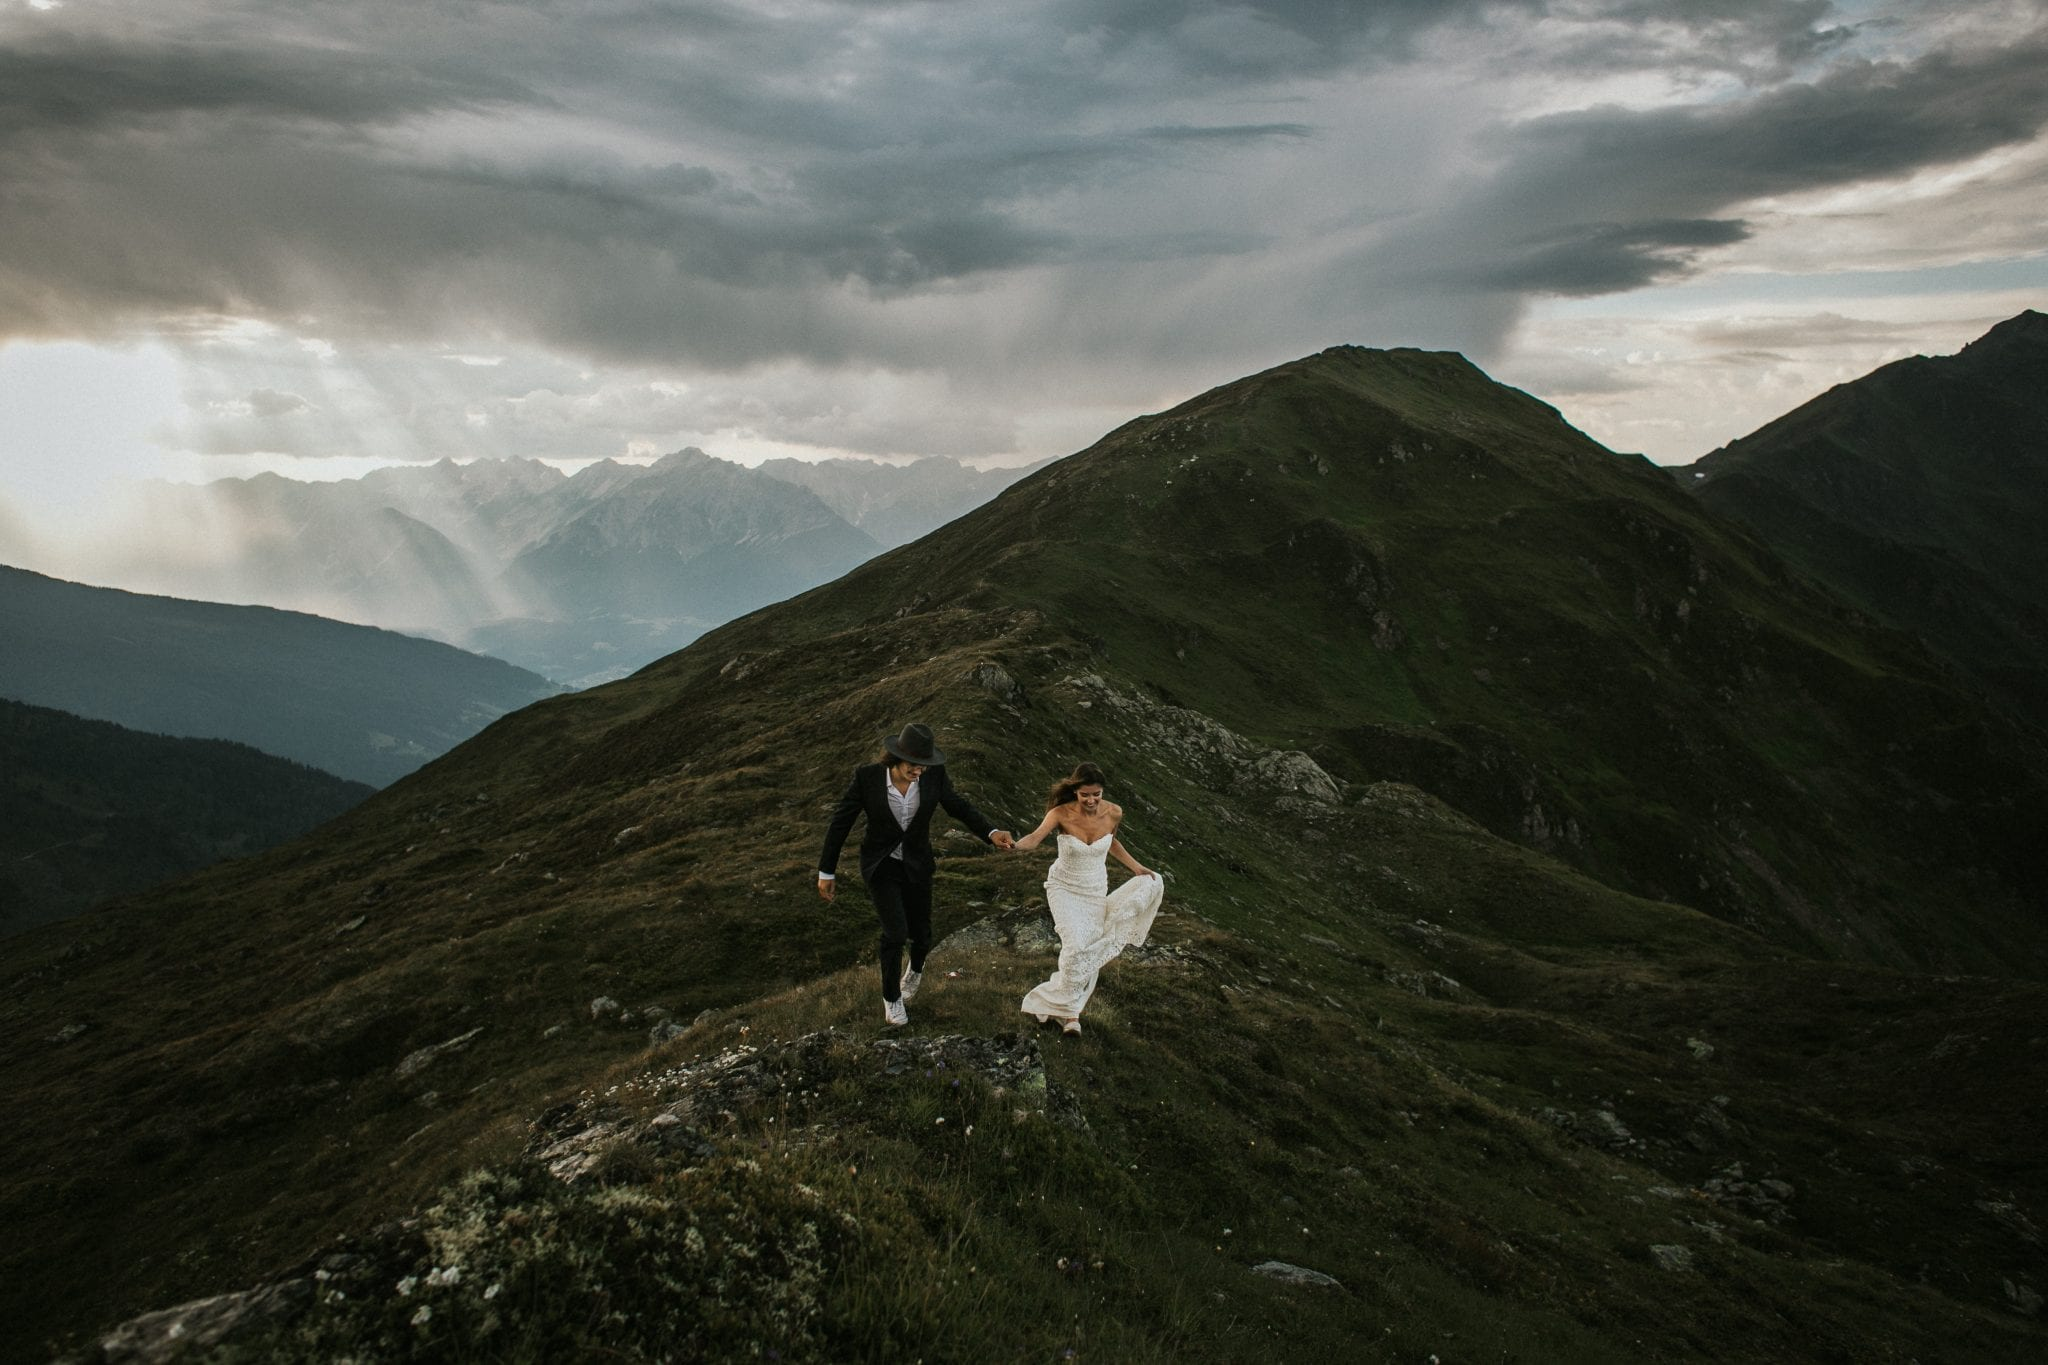 Tyrol, Mountain, Wedding, Alm Hochzeit, Blitzkneisser, Mountain Elopement, Blitzkneisser